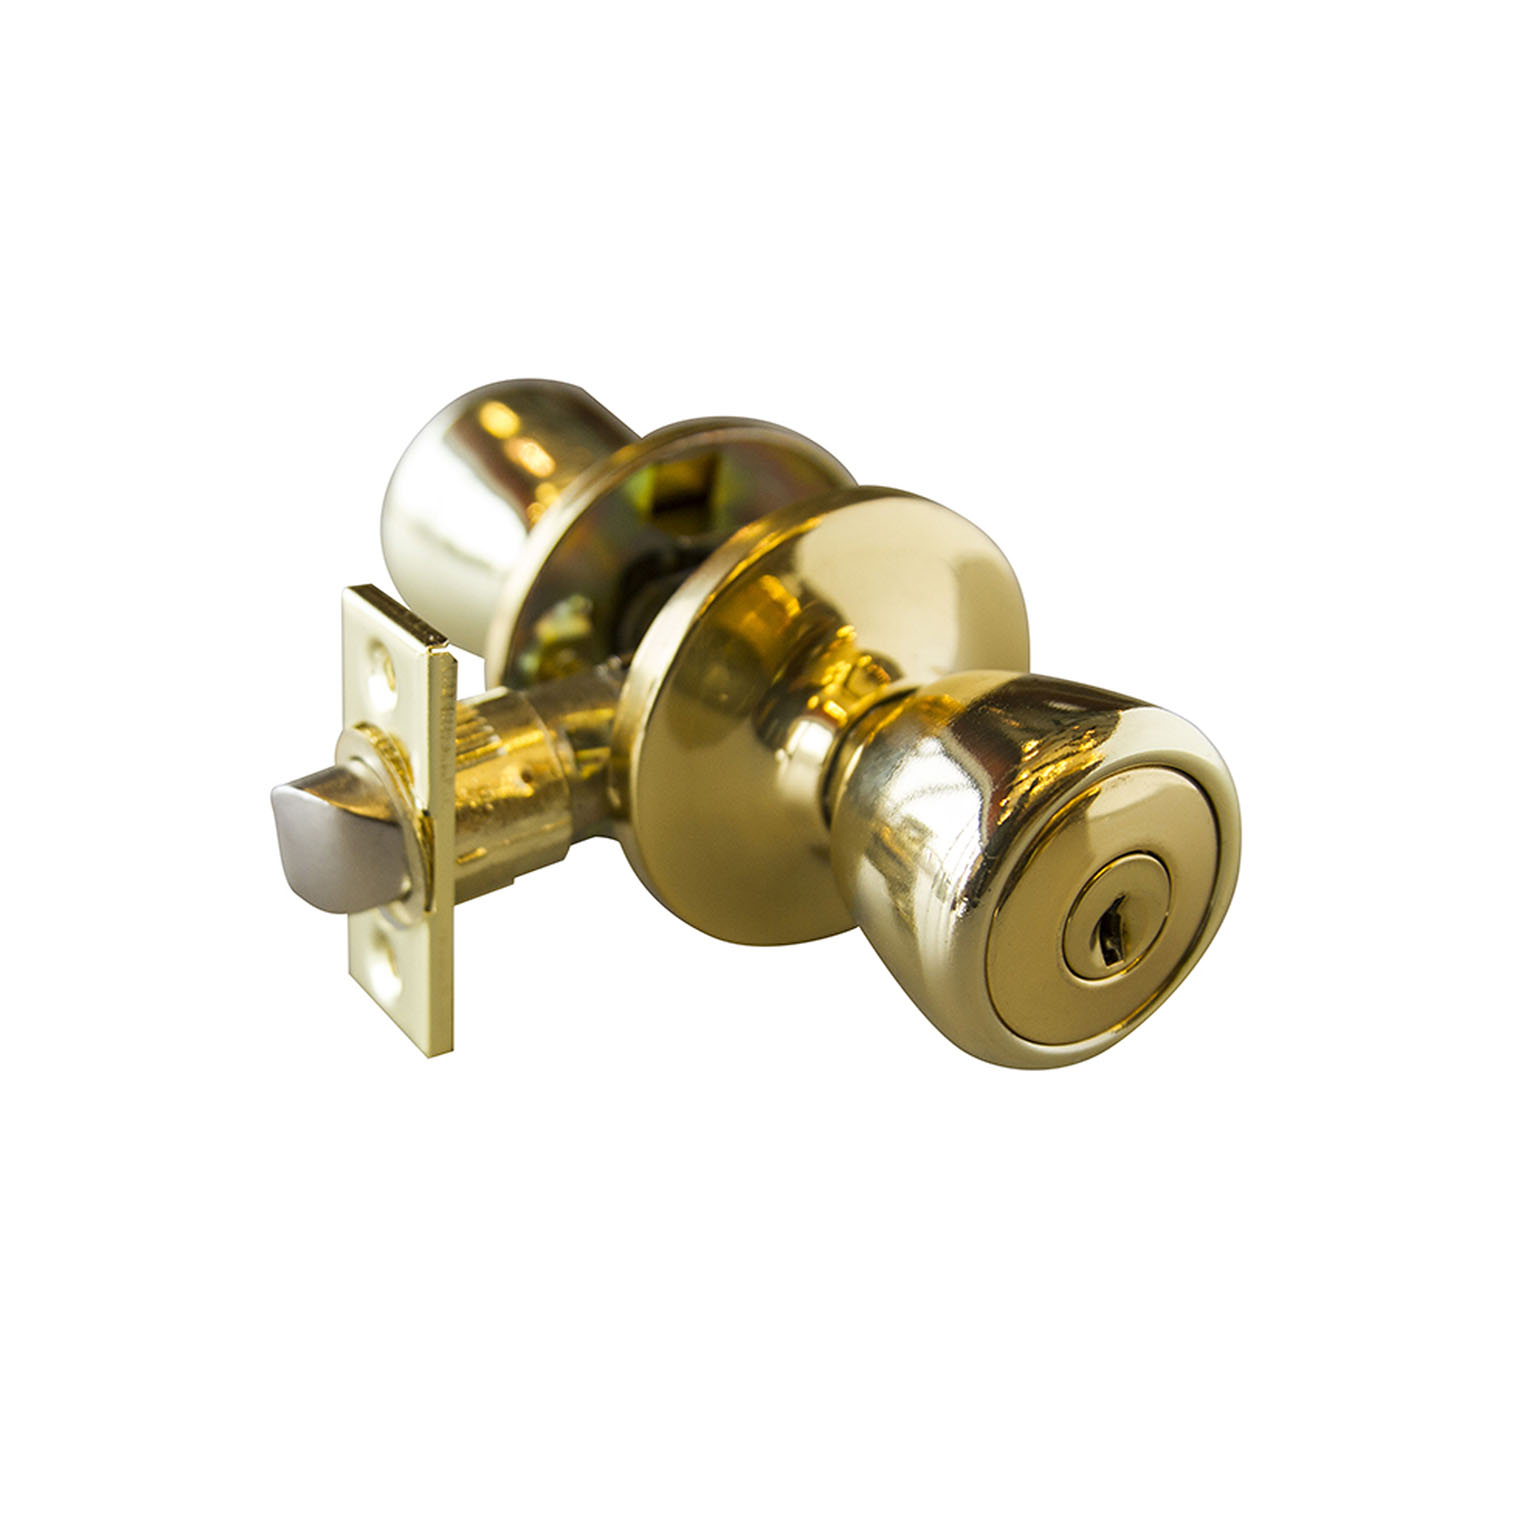 Design House Terrace 6-Way Latch Entry Door Knob, Polished Brass - 728295